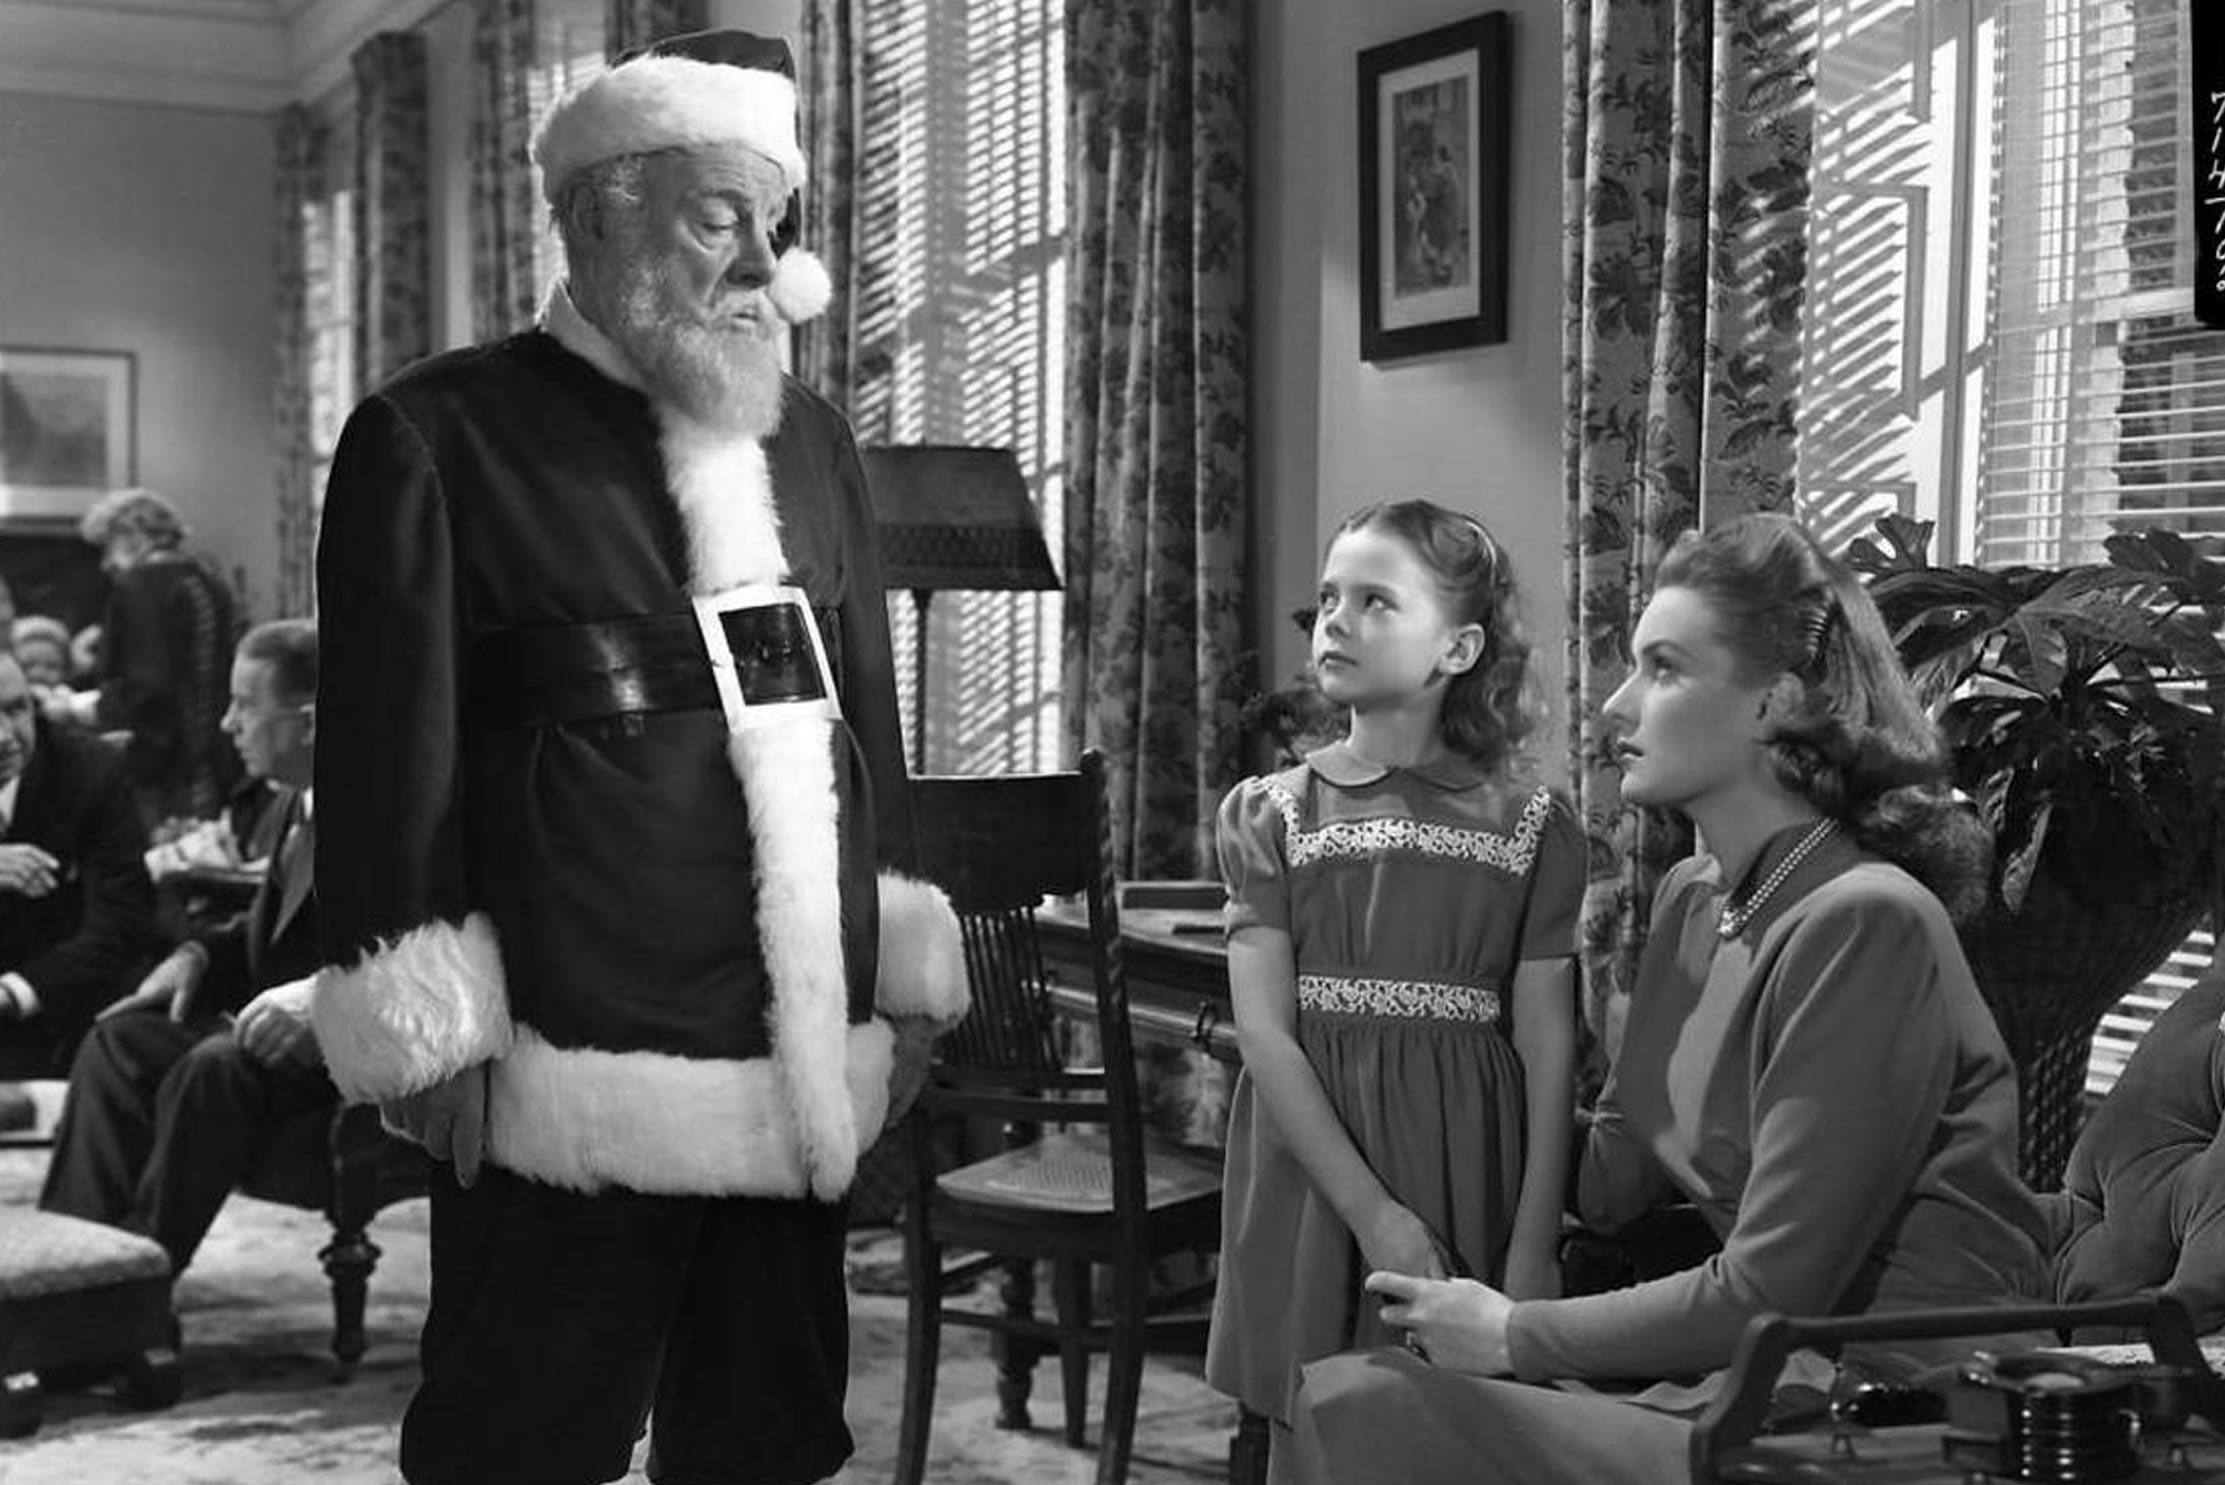 BN1 looks at ten festive cinema favourites, in a list of the best Christmas films